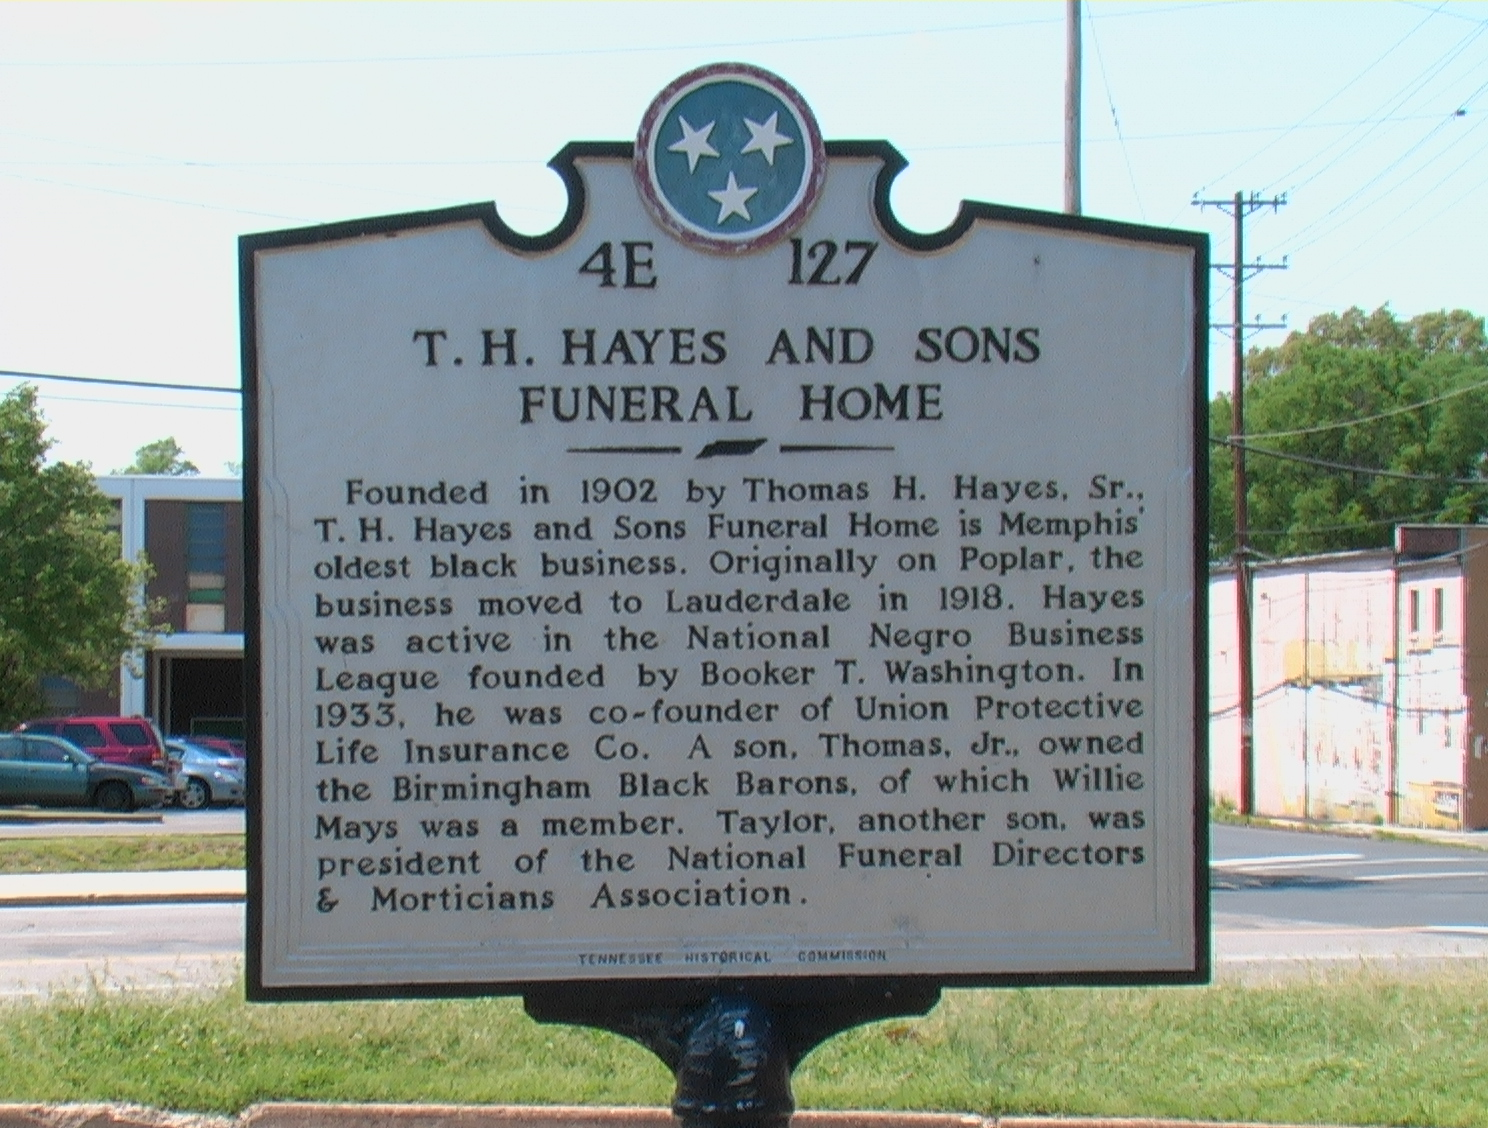 Historical Marker for T.H. and Sons Funeral Home